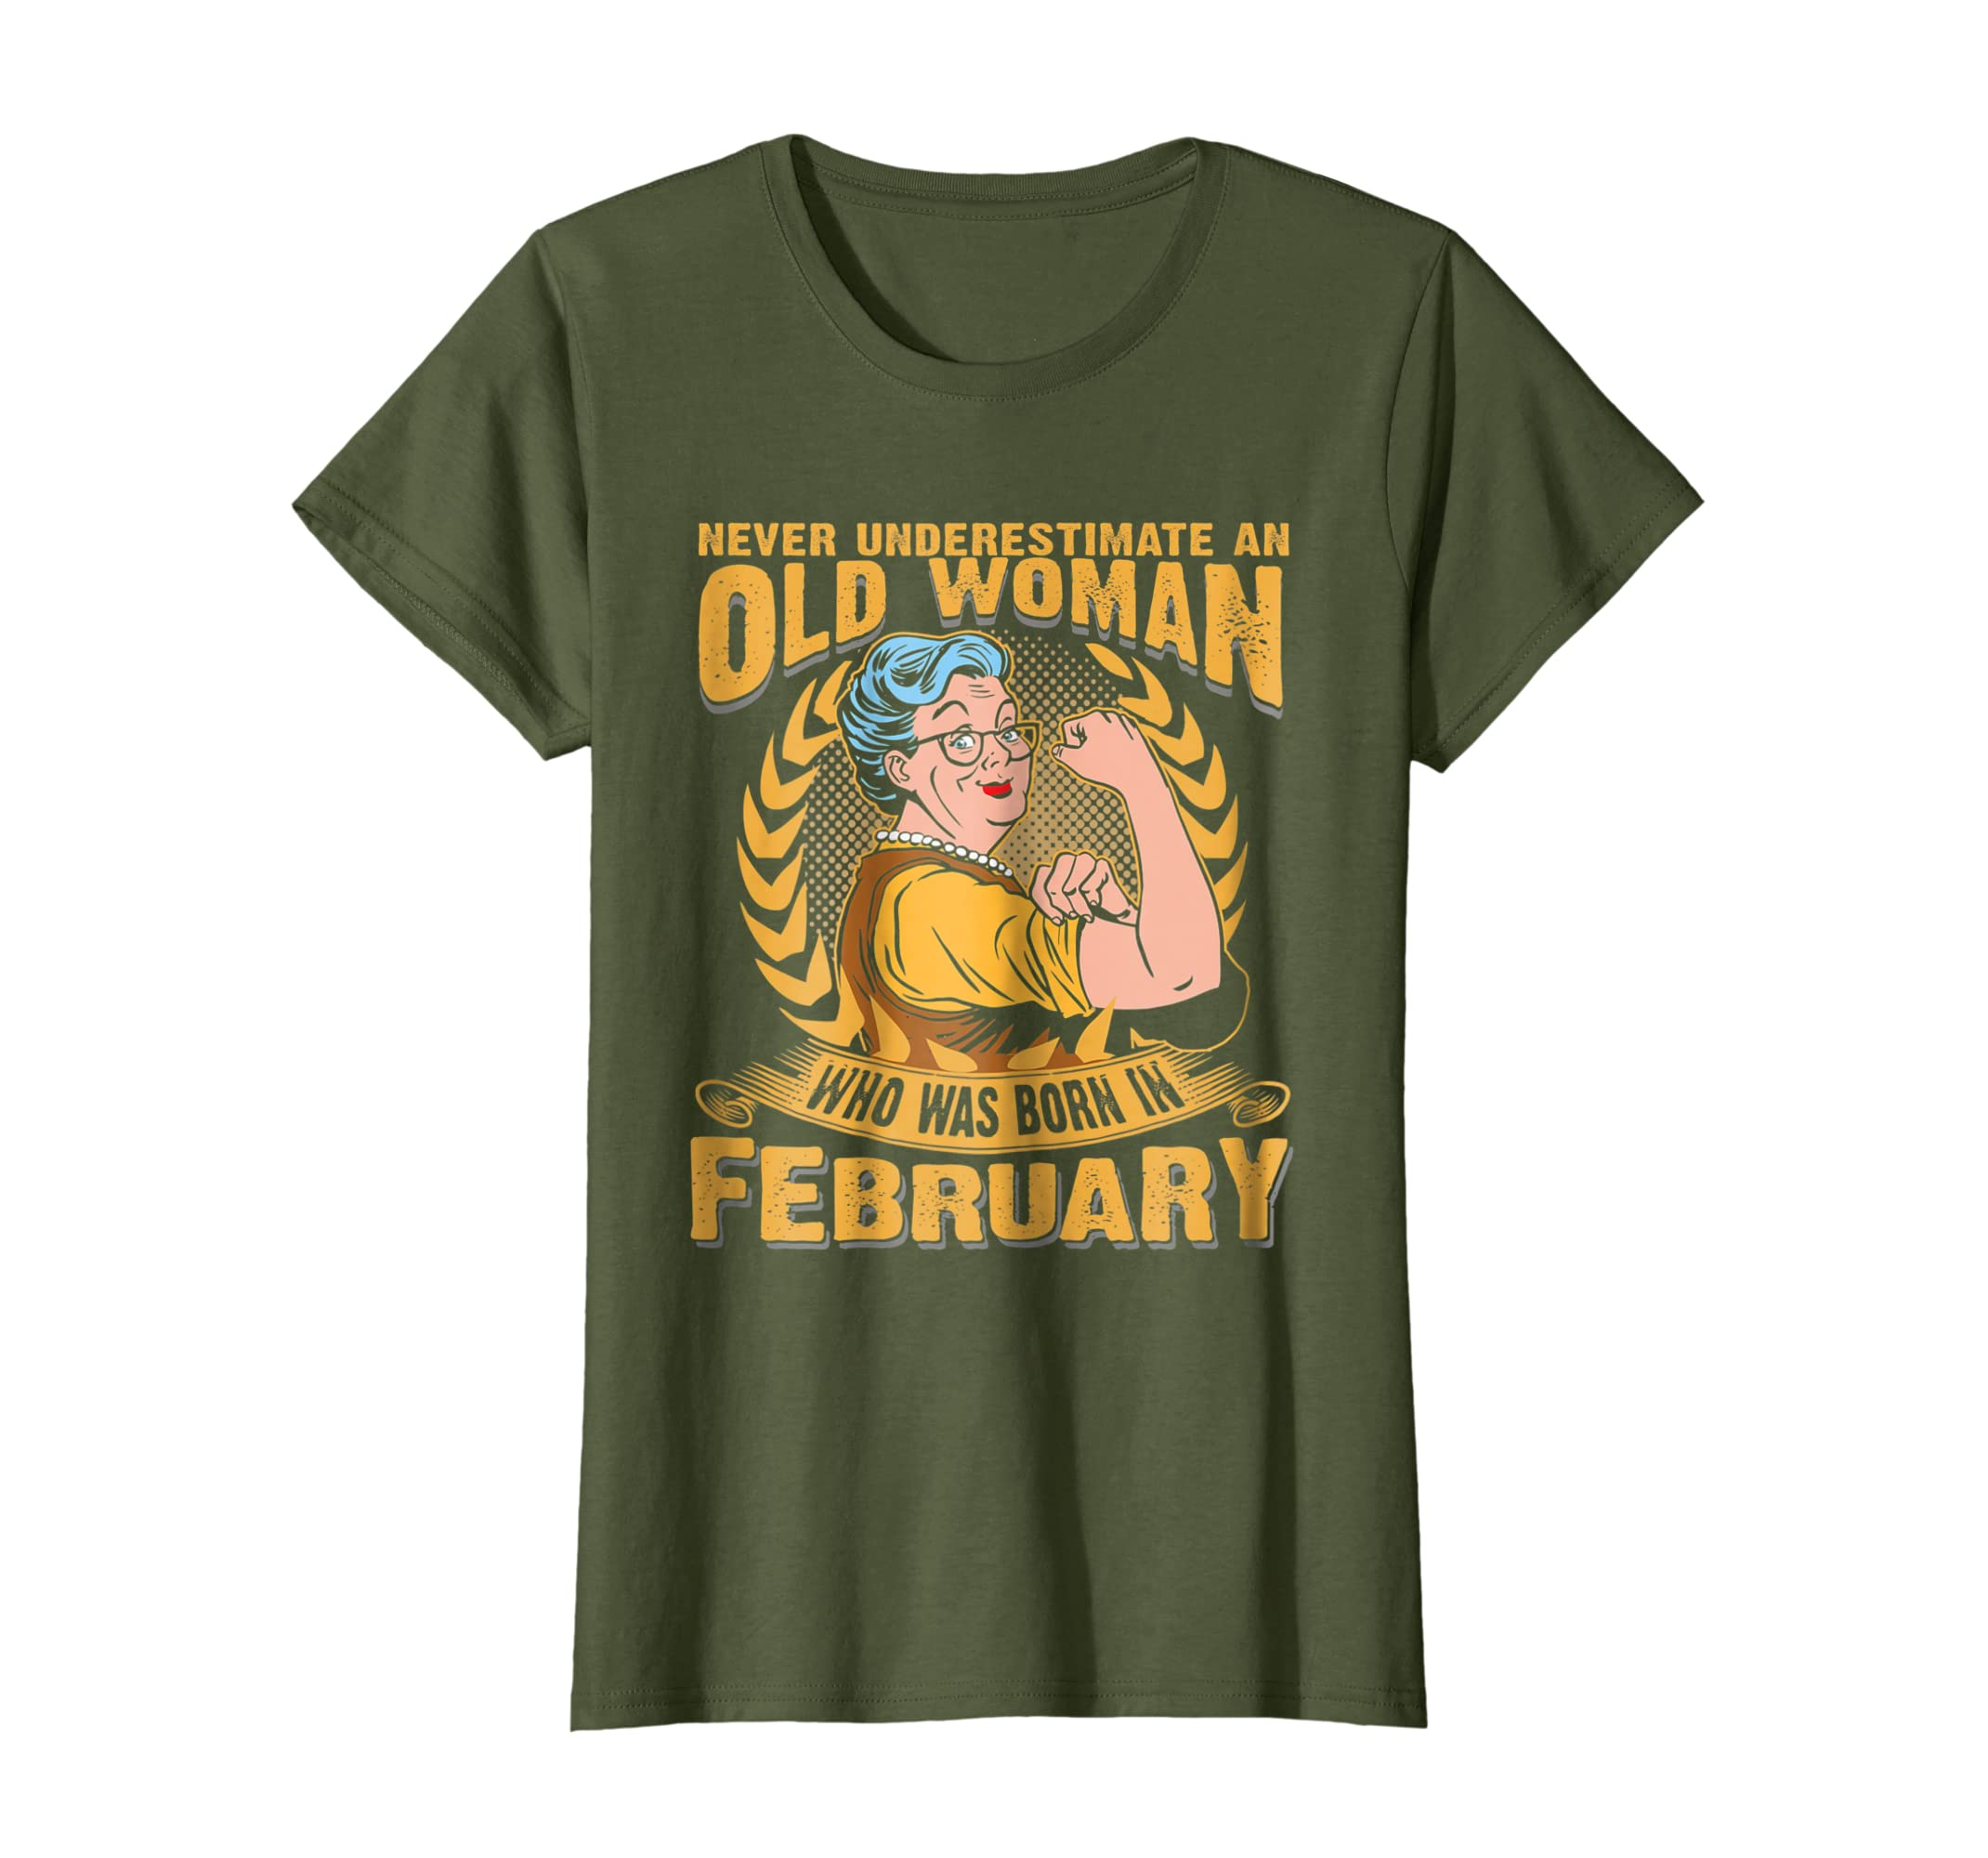 898619f5 Amazon.com: Never Underestimate an Old Woman who was born in February:  Clothing